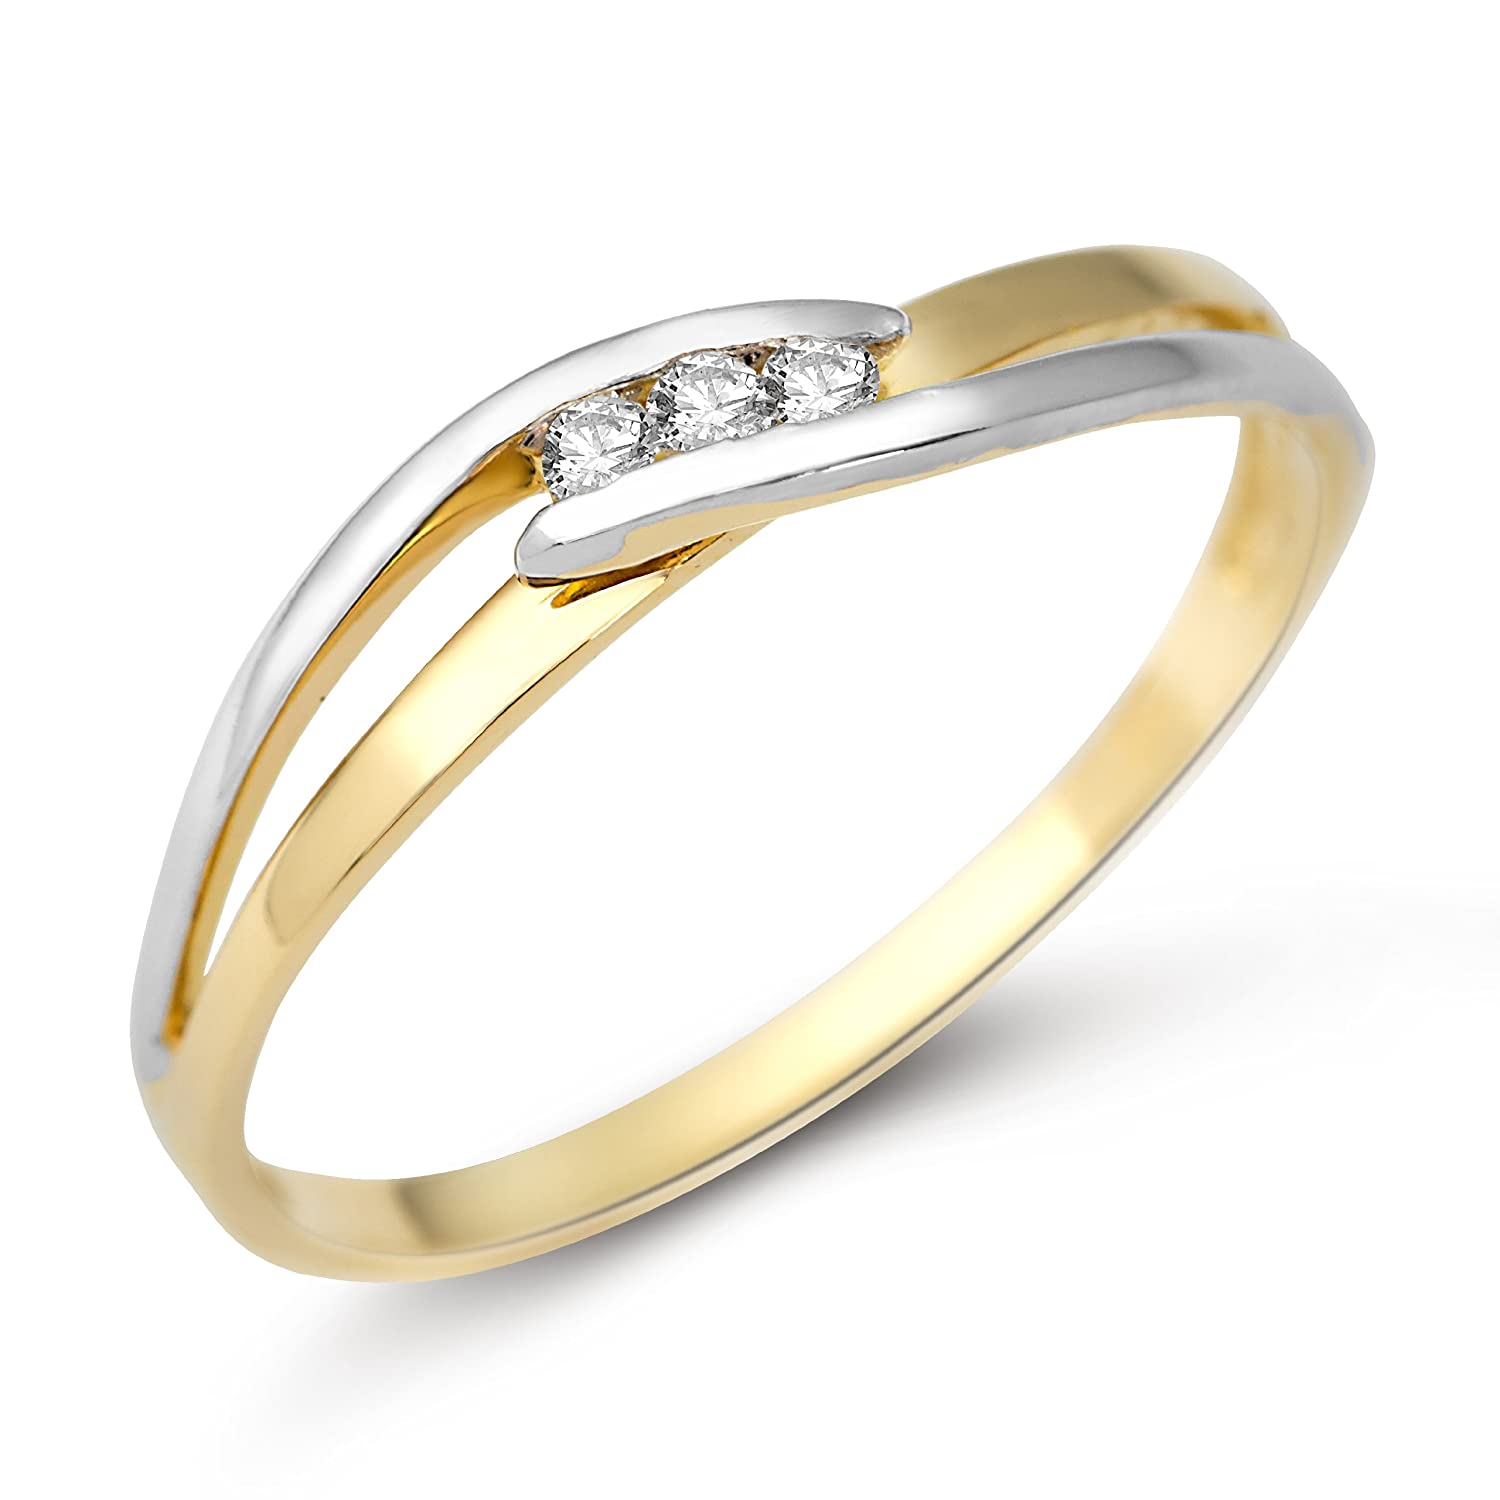 Miore Damen Ring 9 Karat (375) Bicolor Brillanten